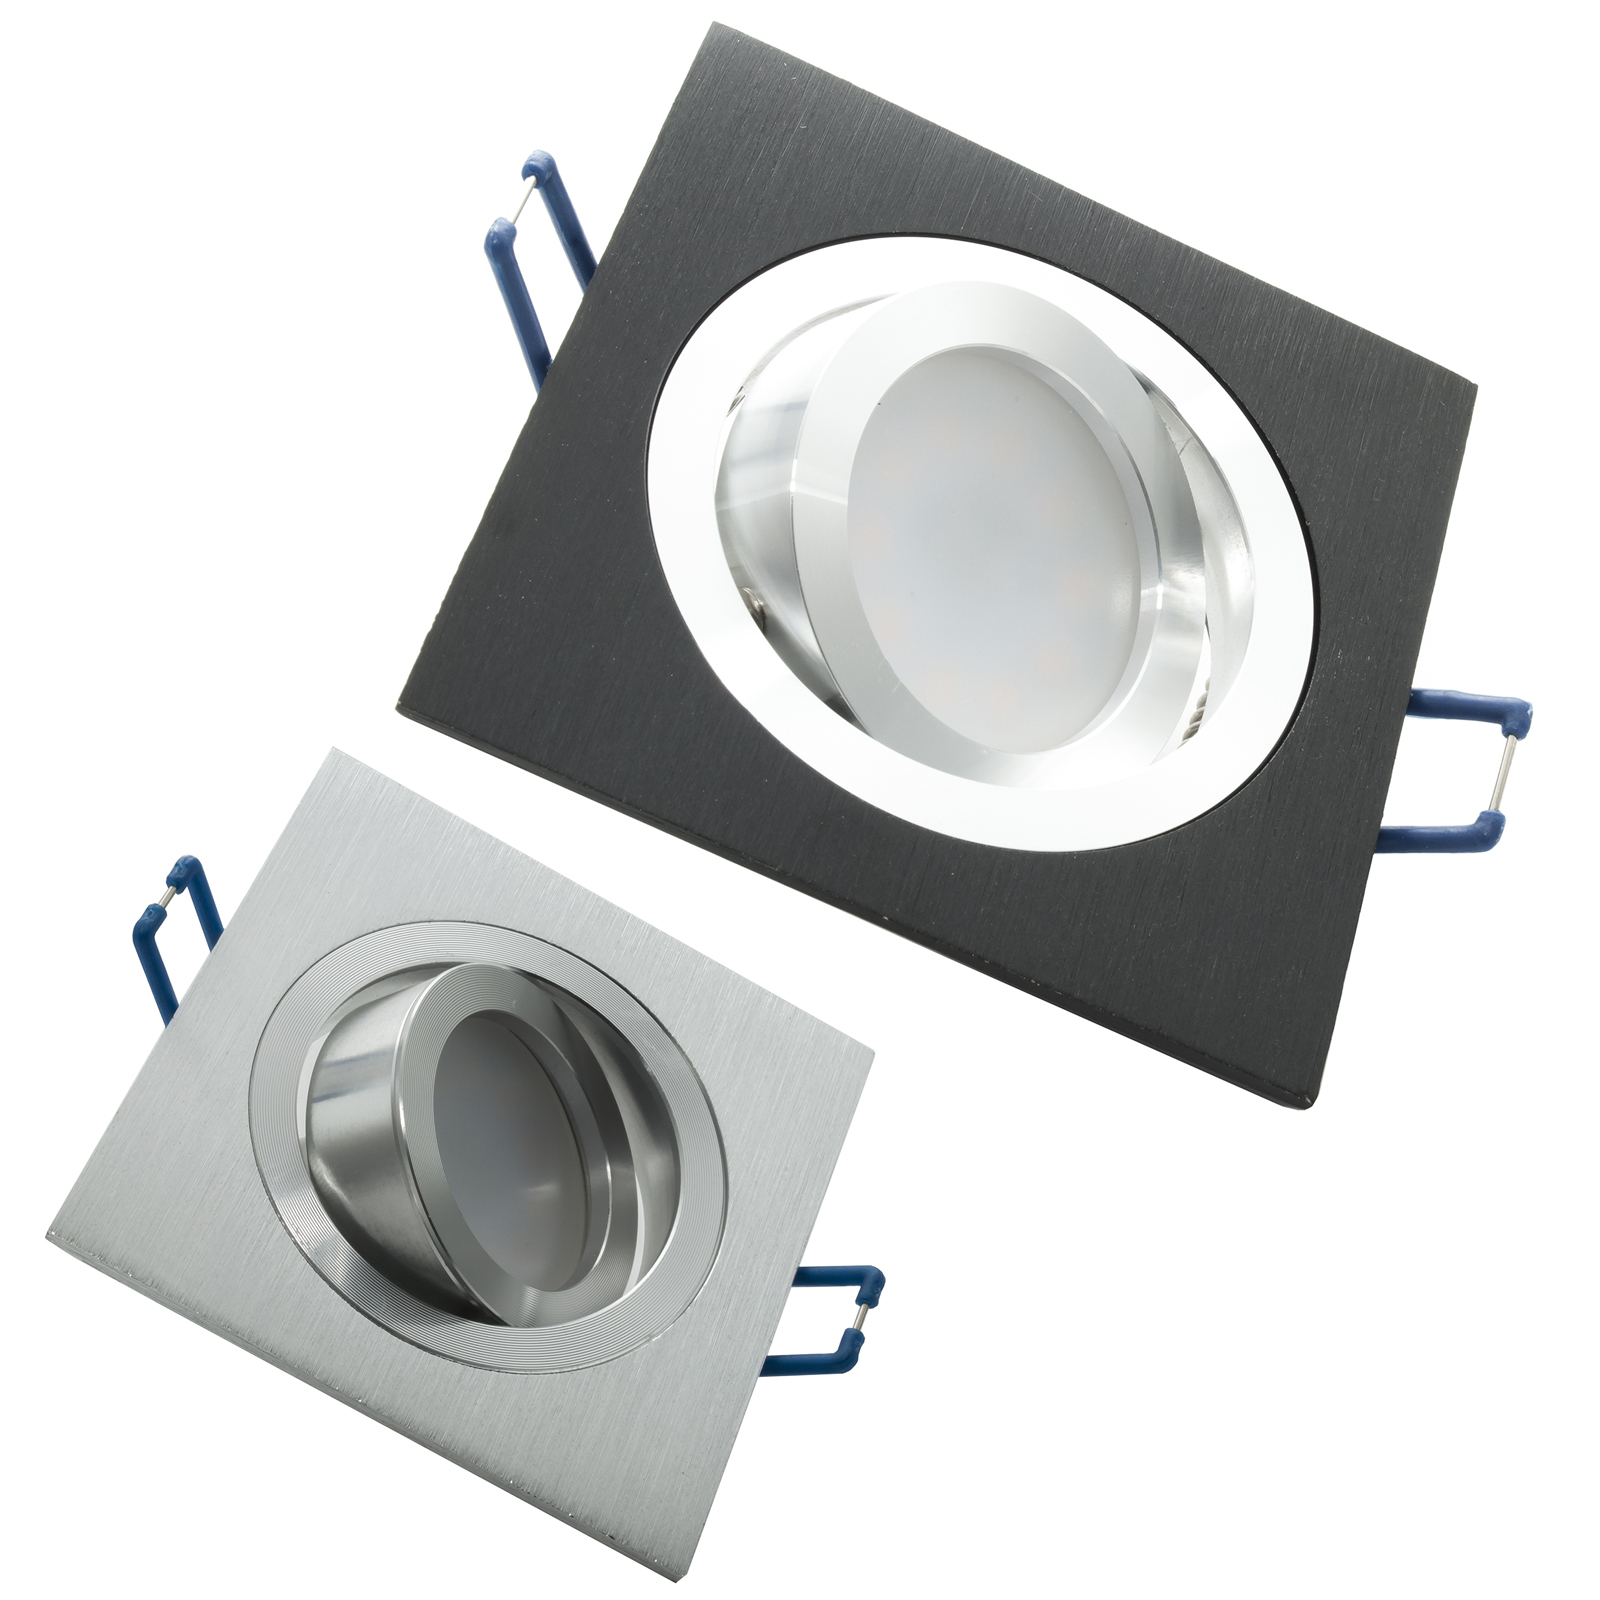 Spotlight adjustable LED 8W recessed square diffused light 150 degree GU10 hole 8